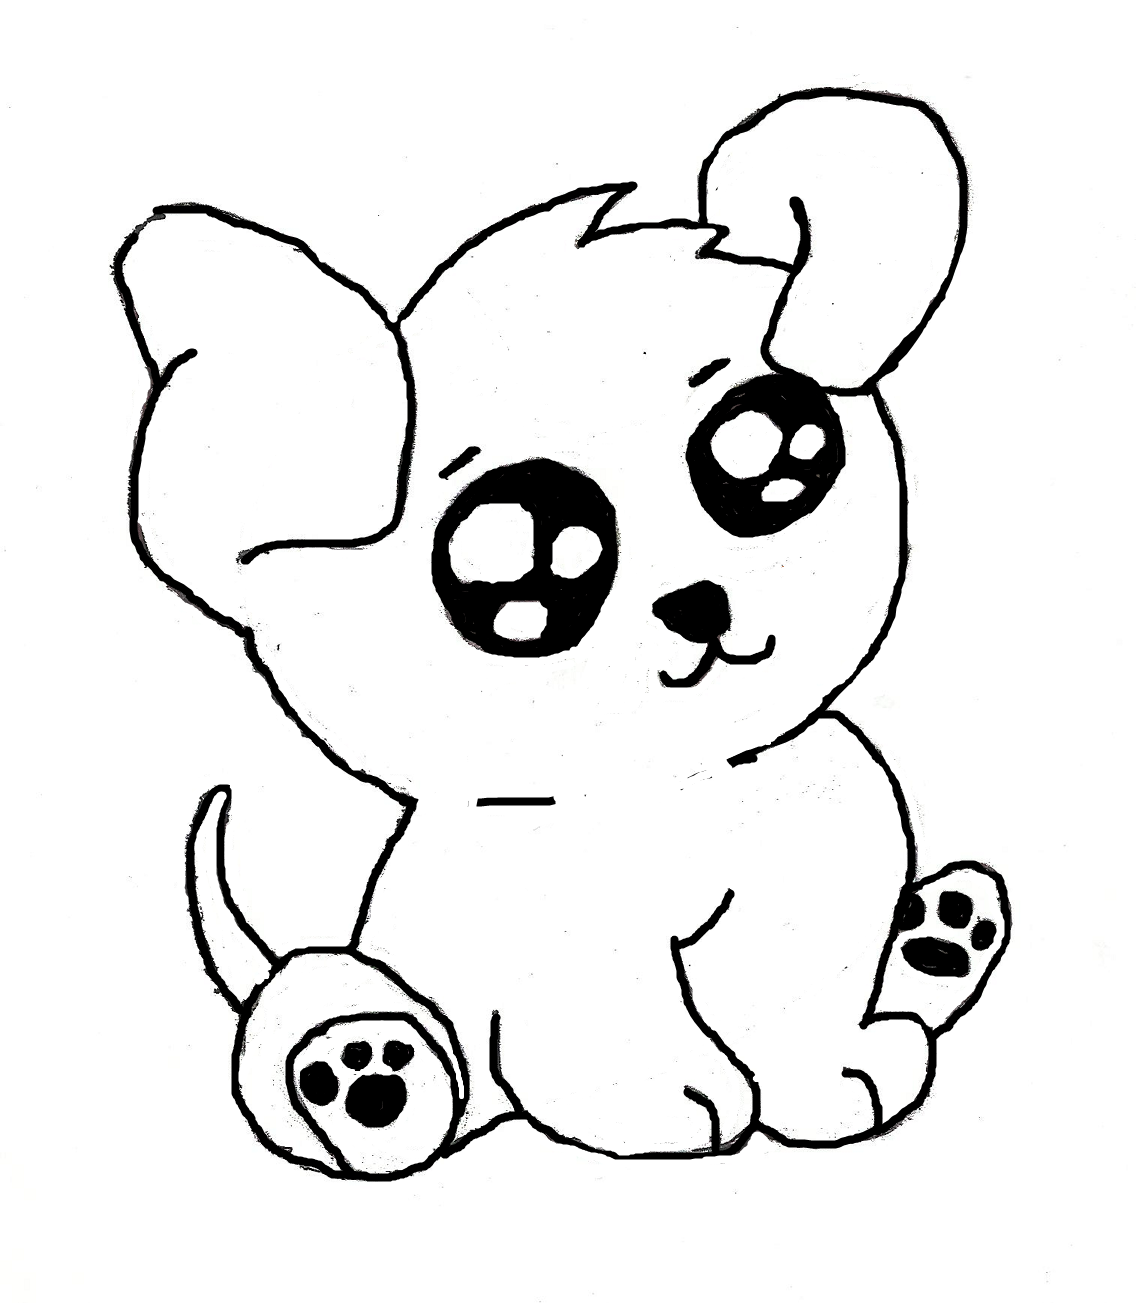 Drawn puppy puppie Drawings Drawings Puppy drawings Coloring